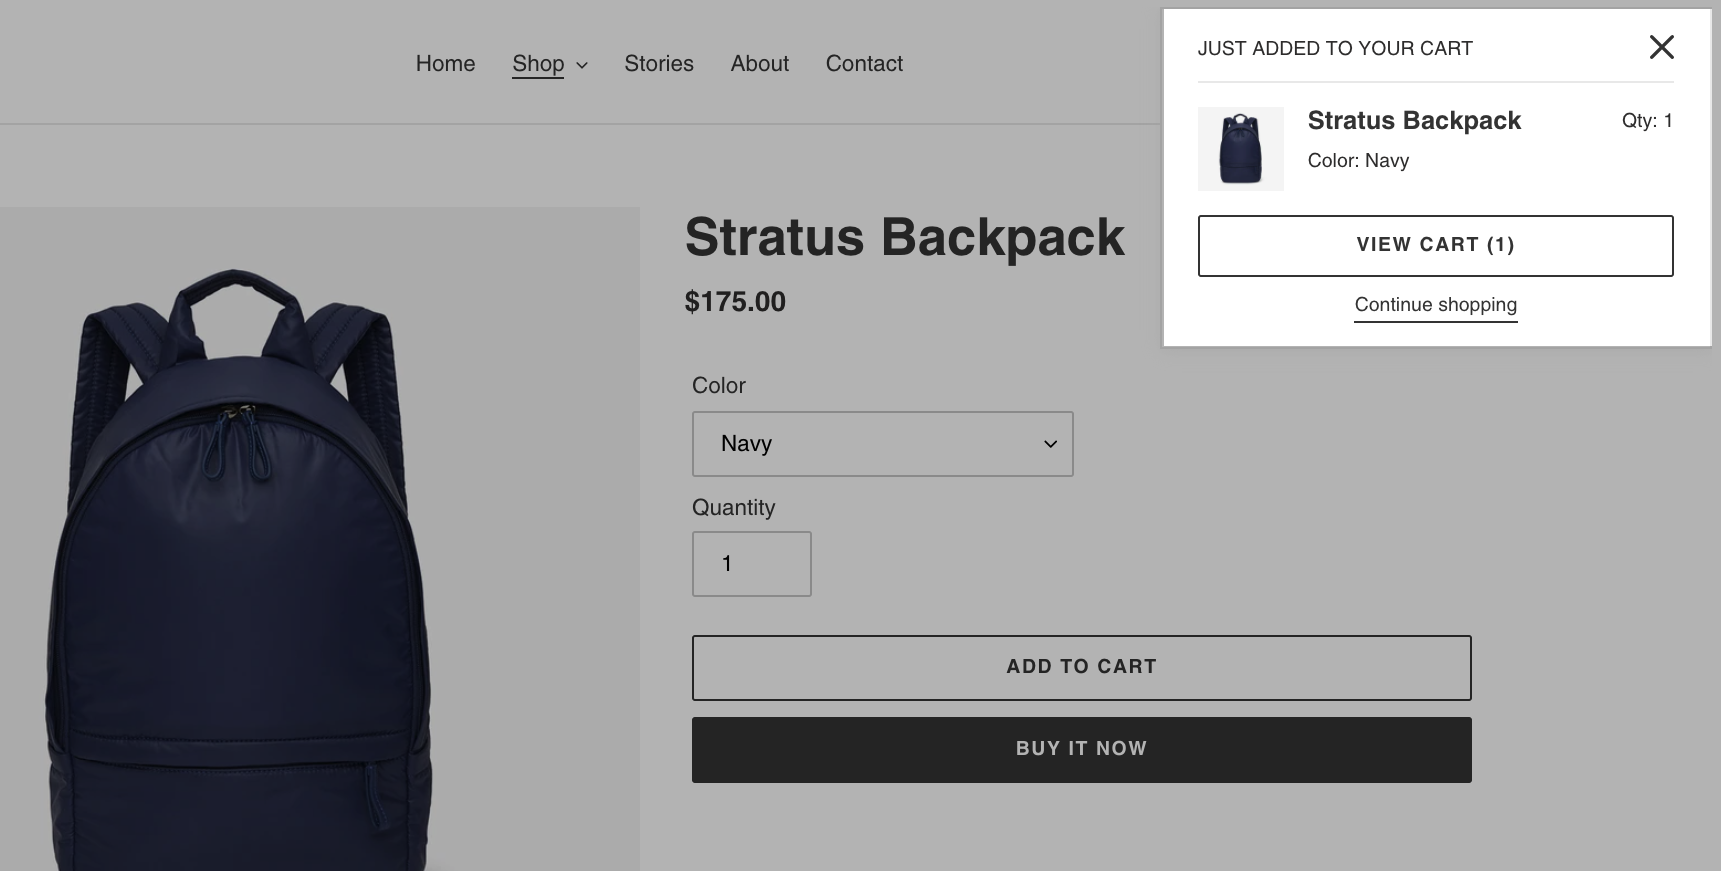 A product page with a popup notification in the top right showing what item was just added to the cart